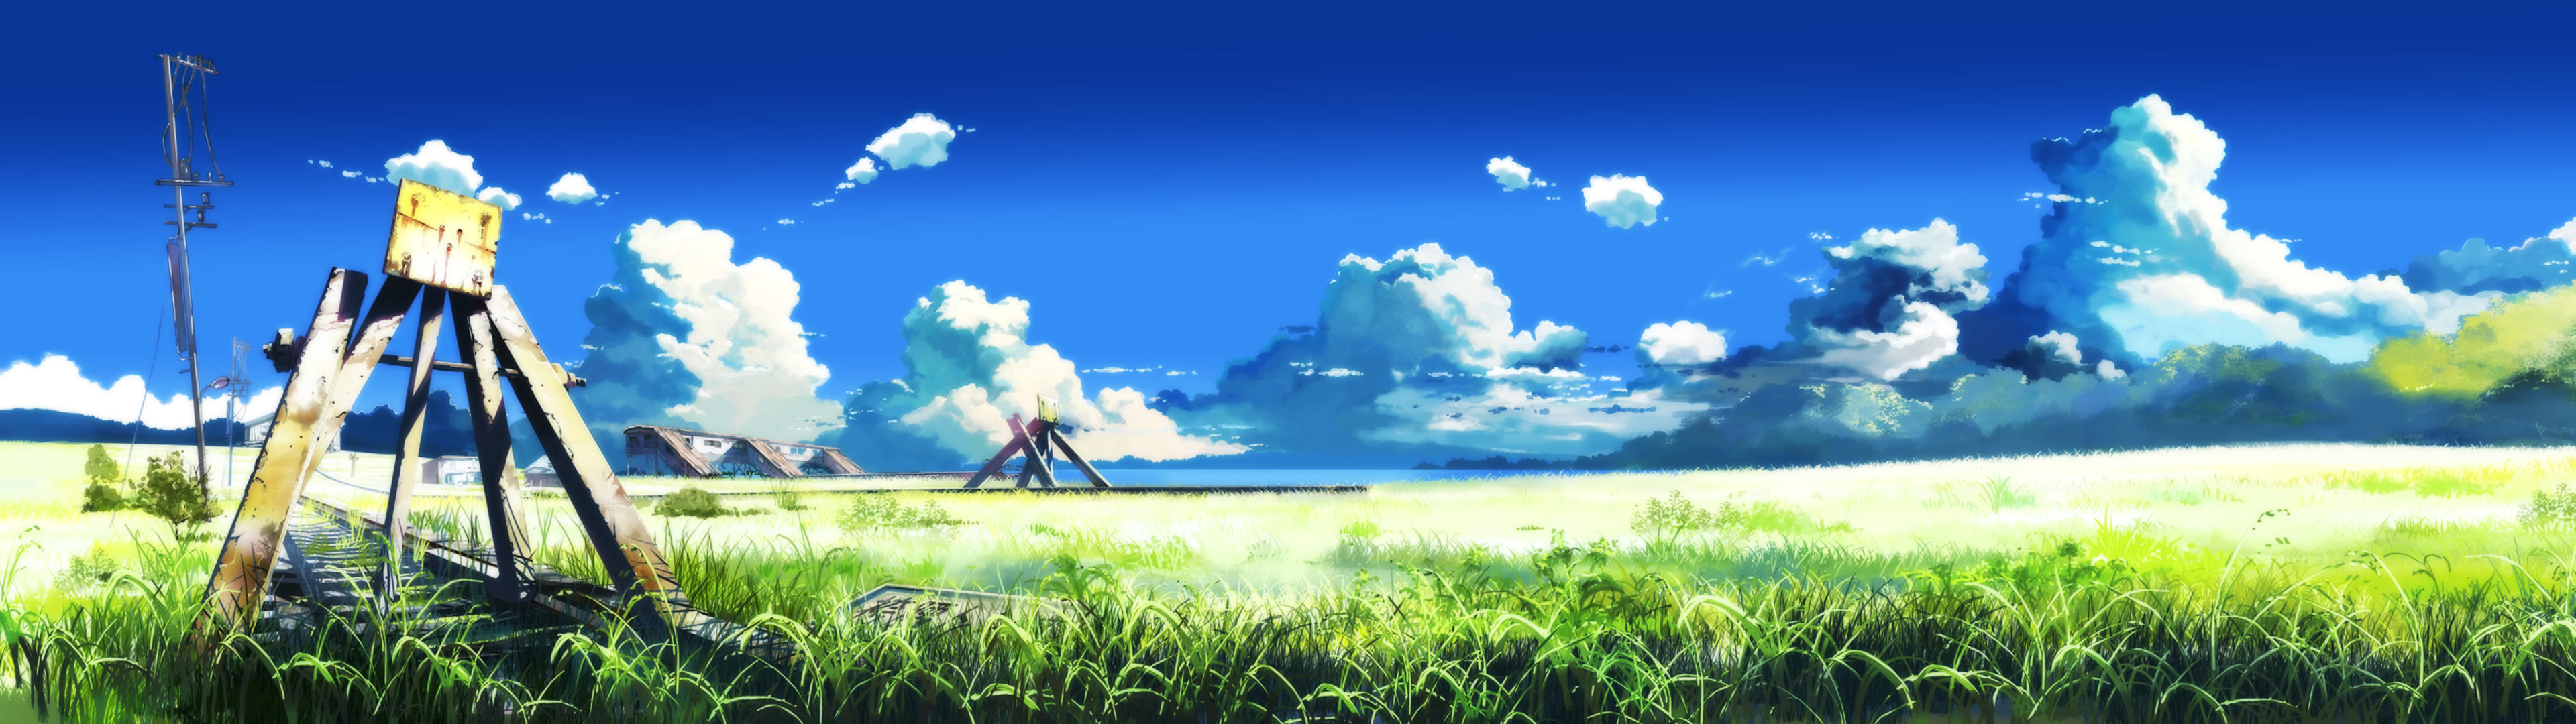 Anime Computer Wallpapers Desktop Backgrounds 3840x1080 ID391569 3840x1080